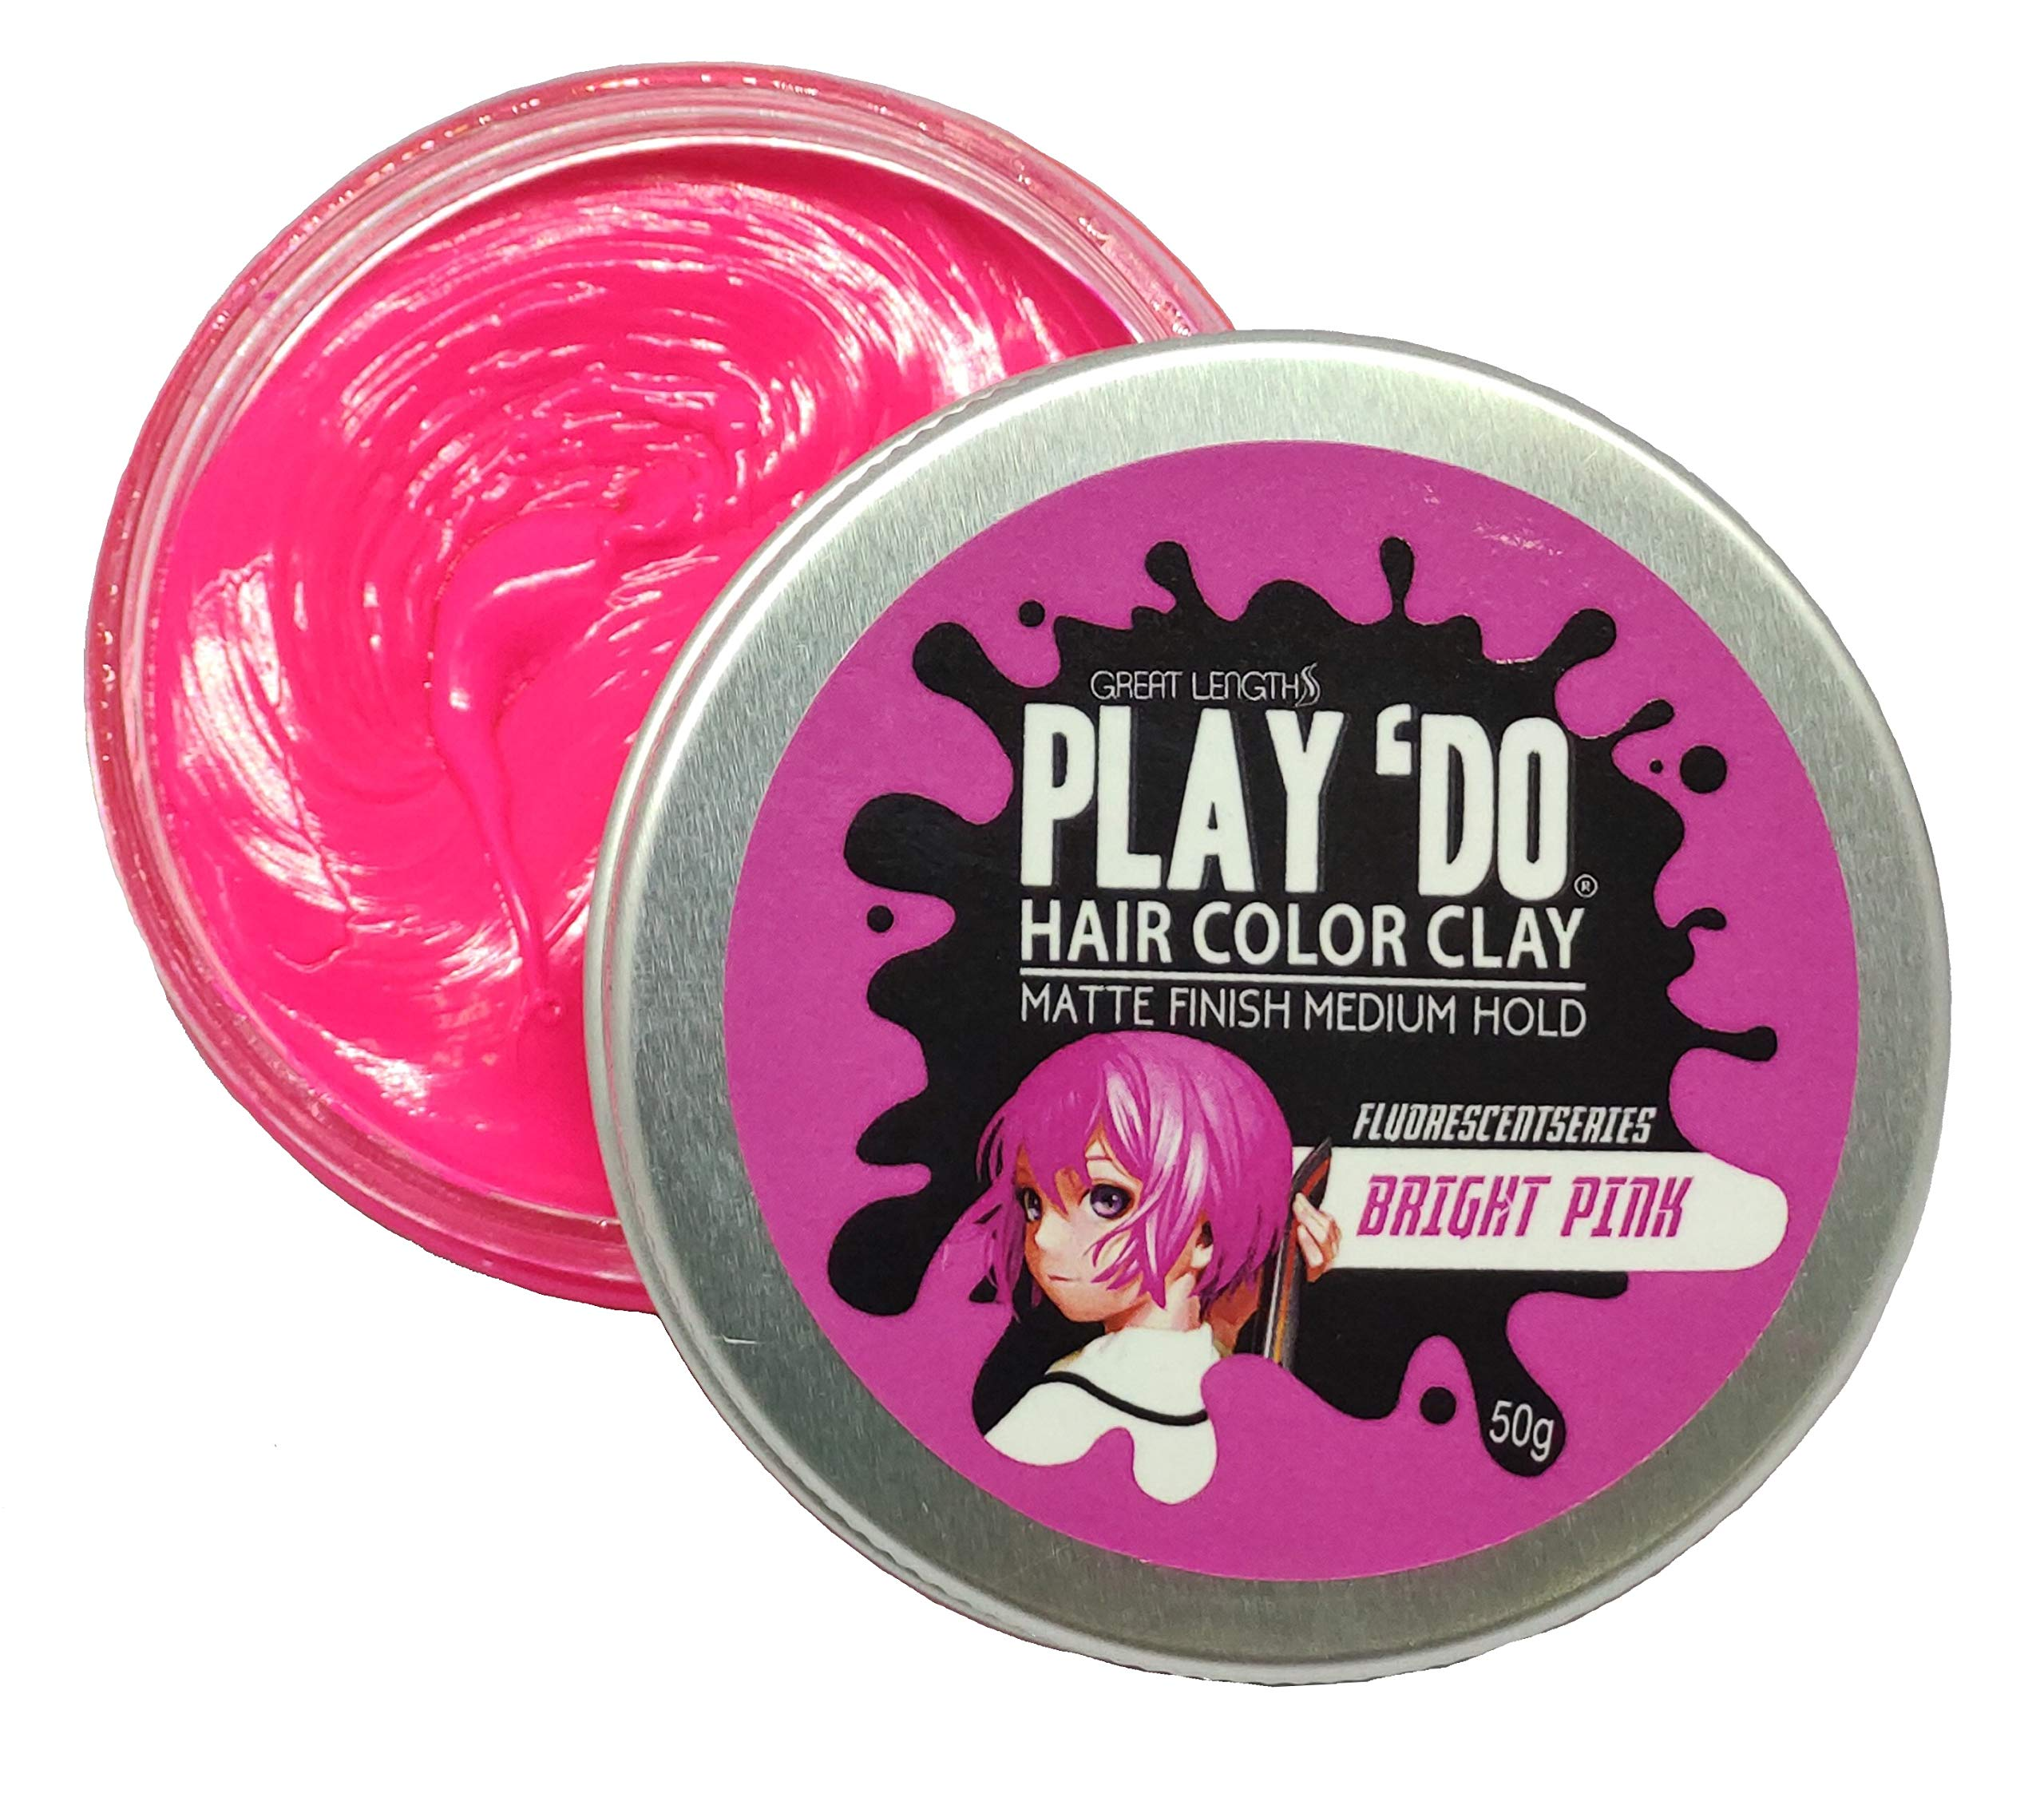 Play 'Do Temporary Hair Color Bright Neon Pink, Hair Wax, Hair Clay, Mens Grooming, Pomade, Pink hair dye(1.8 ounces) by Great Lengths